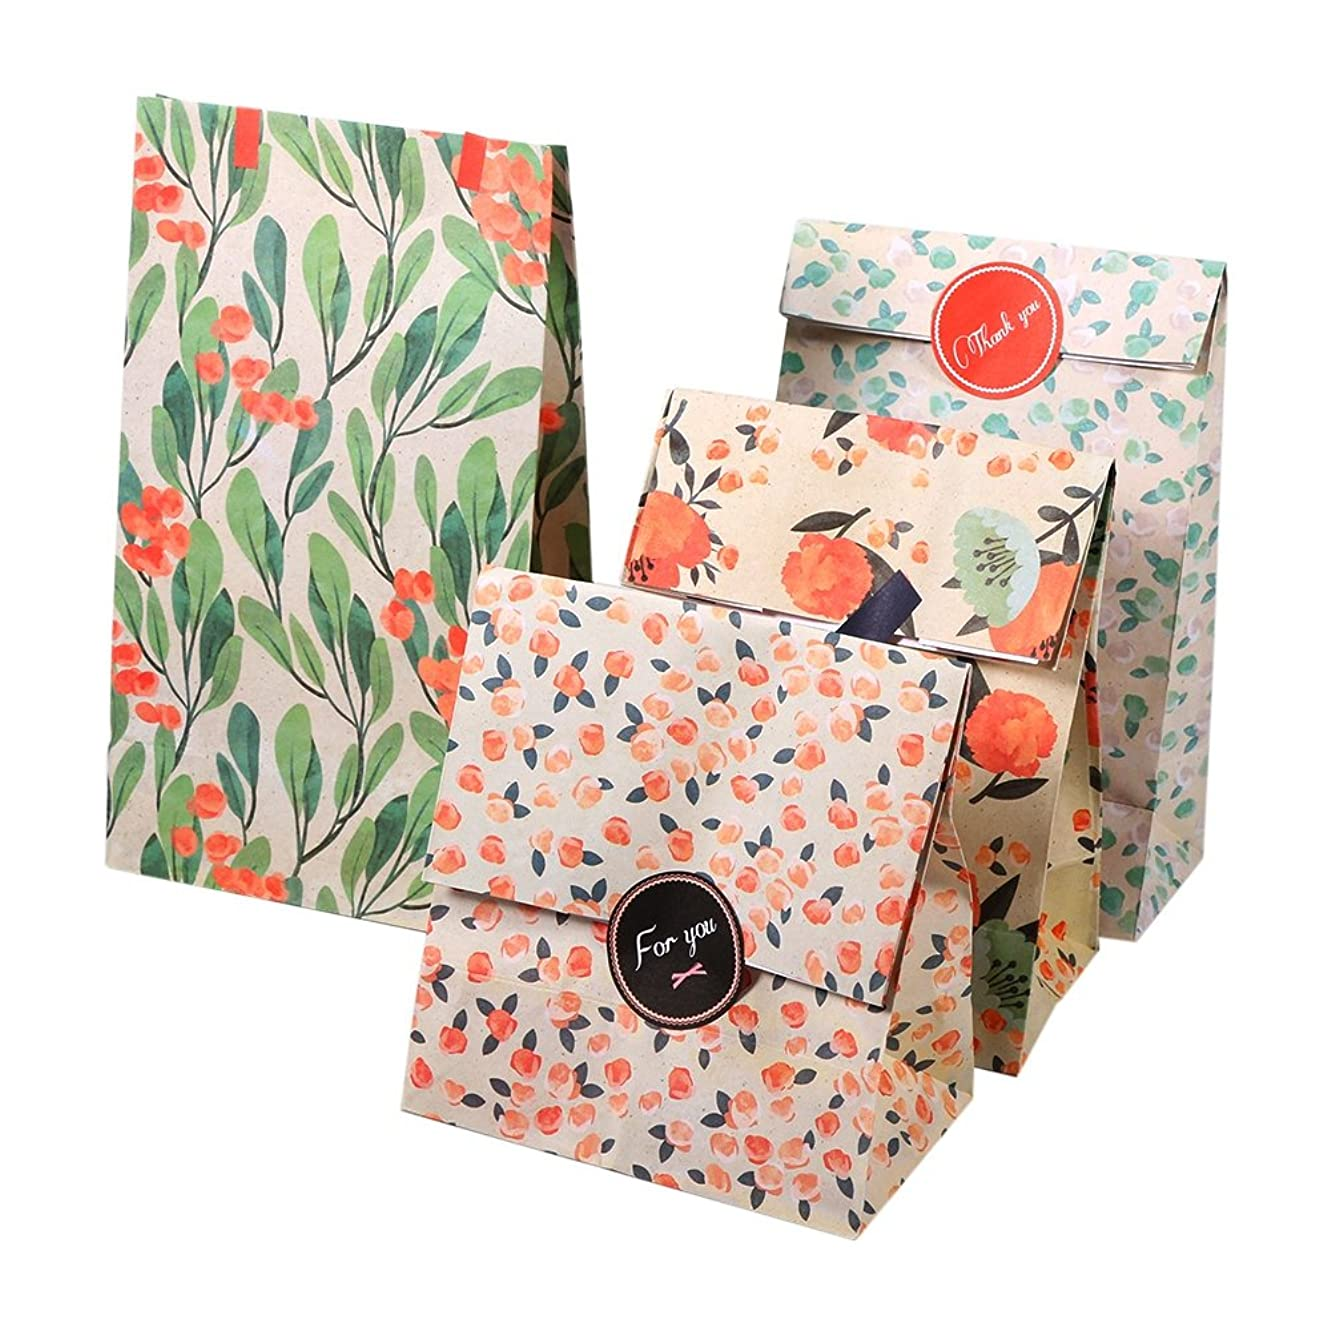 12PCS Flower Pattern Kraft Paper Bag Paper Gift Bags Treat Bags Candy Cookie Biscuits Bag Craft Bags Merchandise Bags with Stickers for Baby Shower Wedding Birthday Party